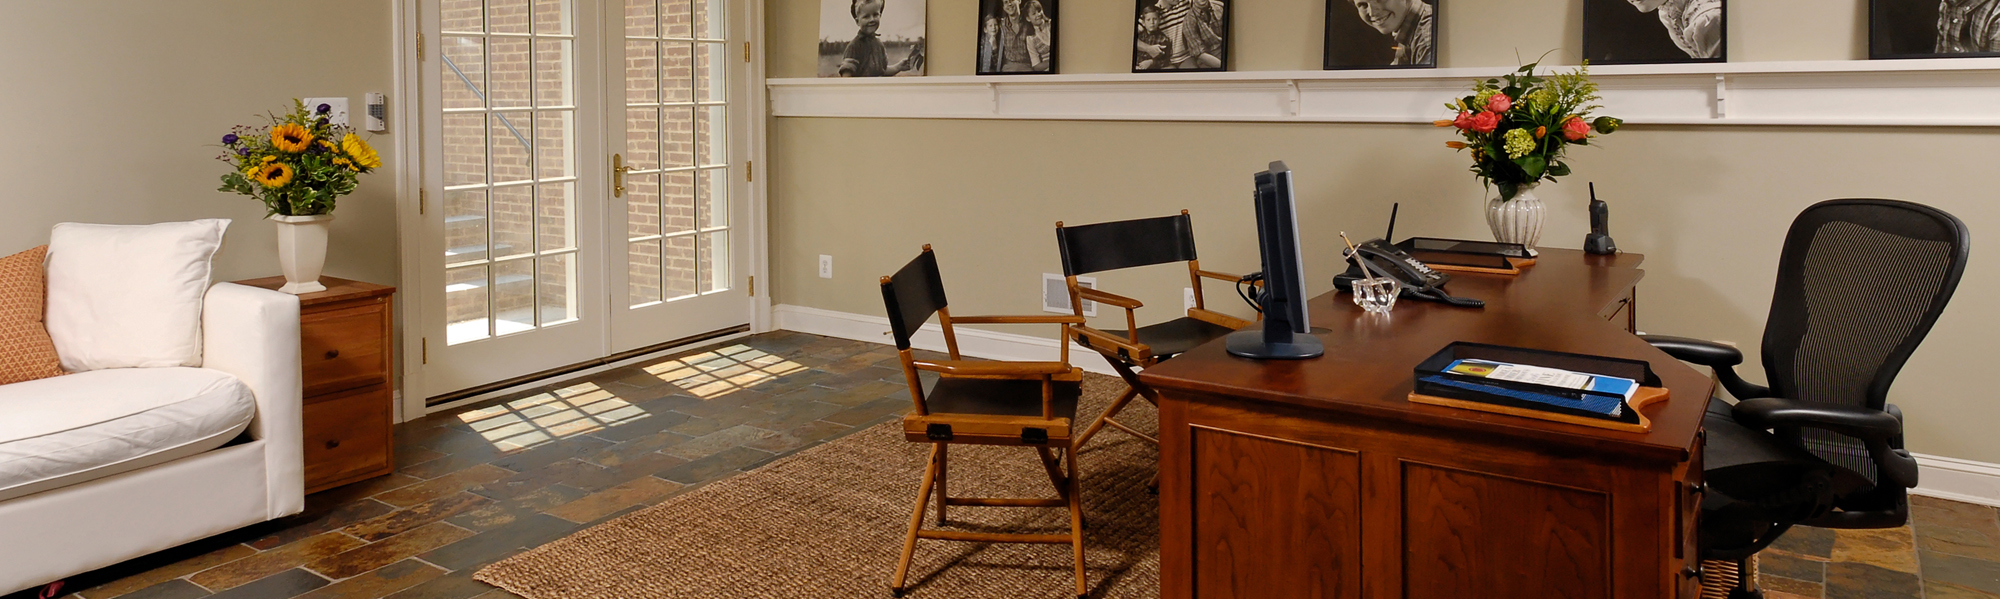 lower level renovation creates home office in mclean virginia home bowa build home office header